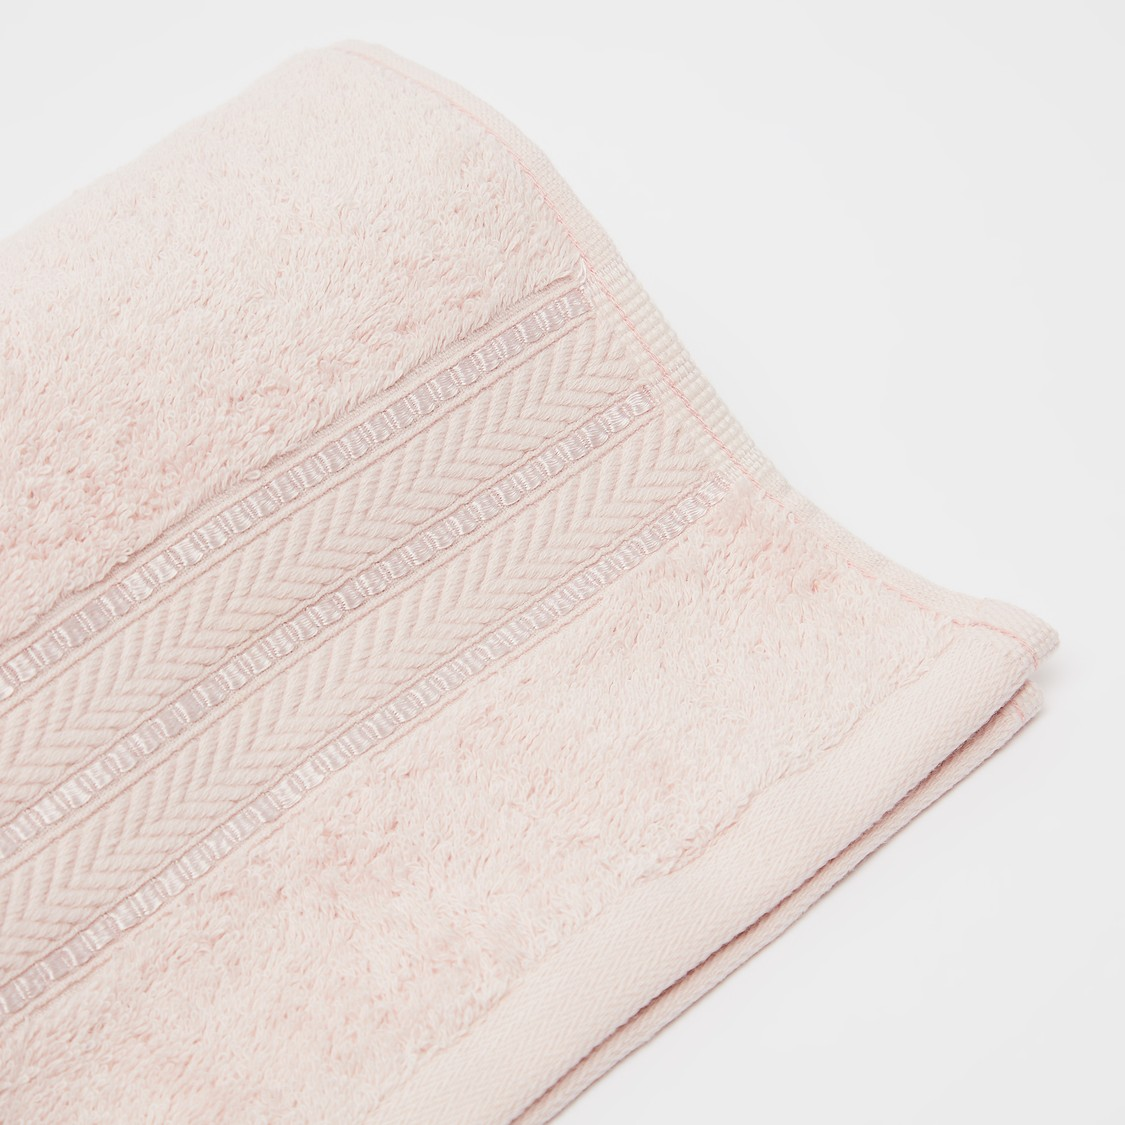 Textured Egyptian Cotton Hand Towel - 80x50 cms